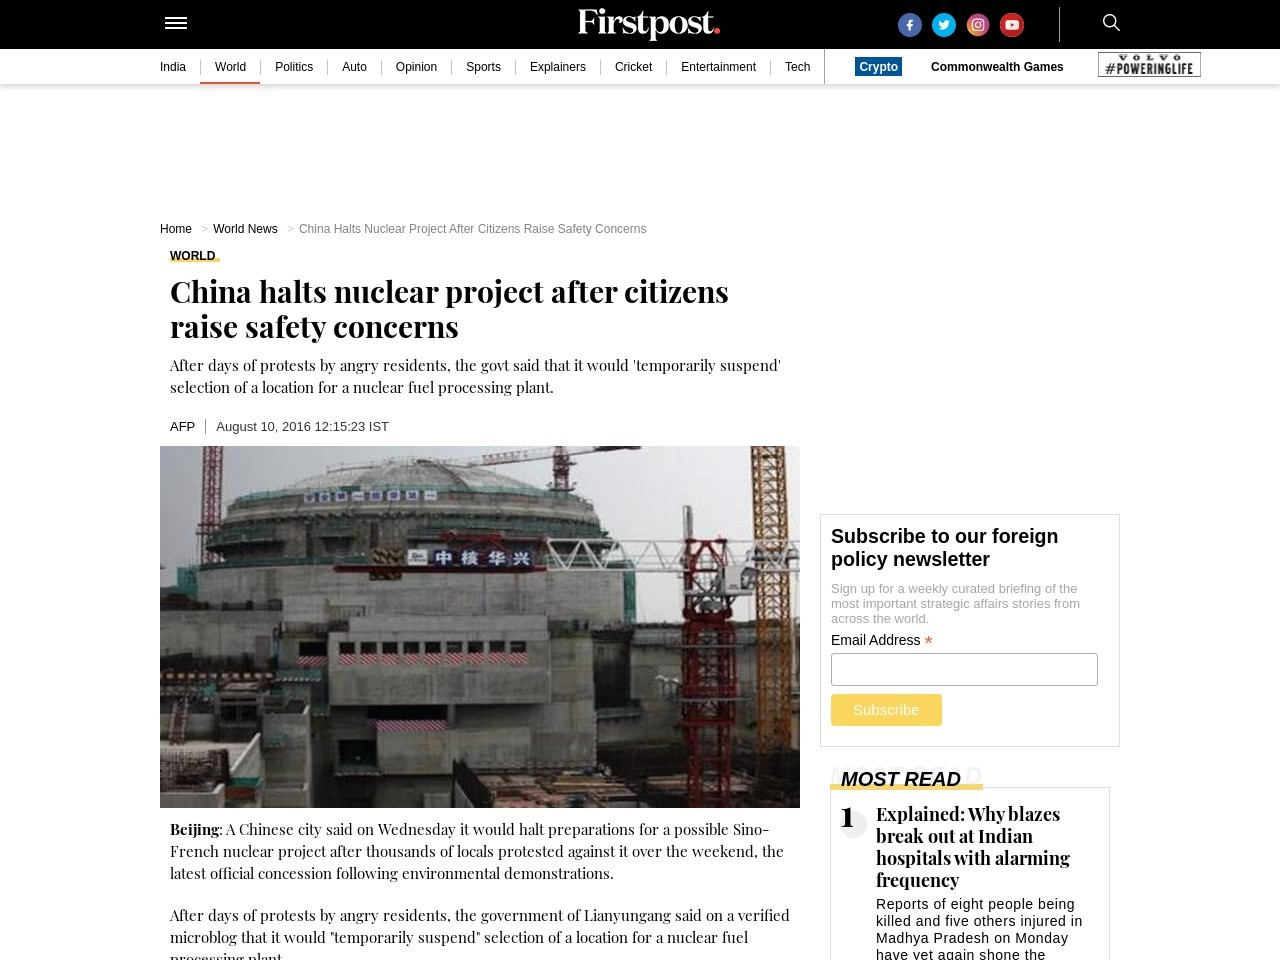 China halts nuclear project after citizens raise safety concerns